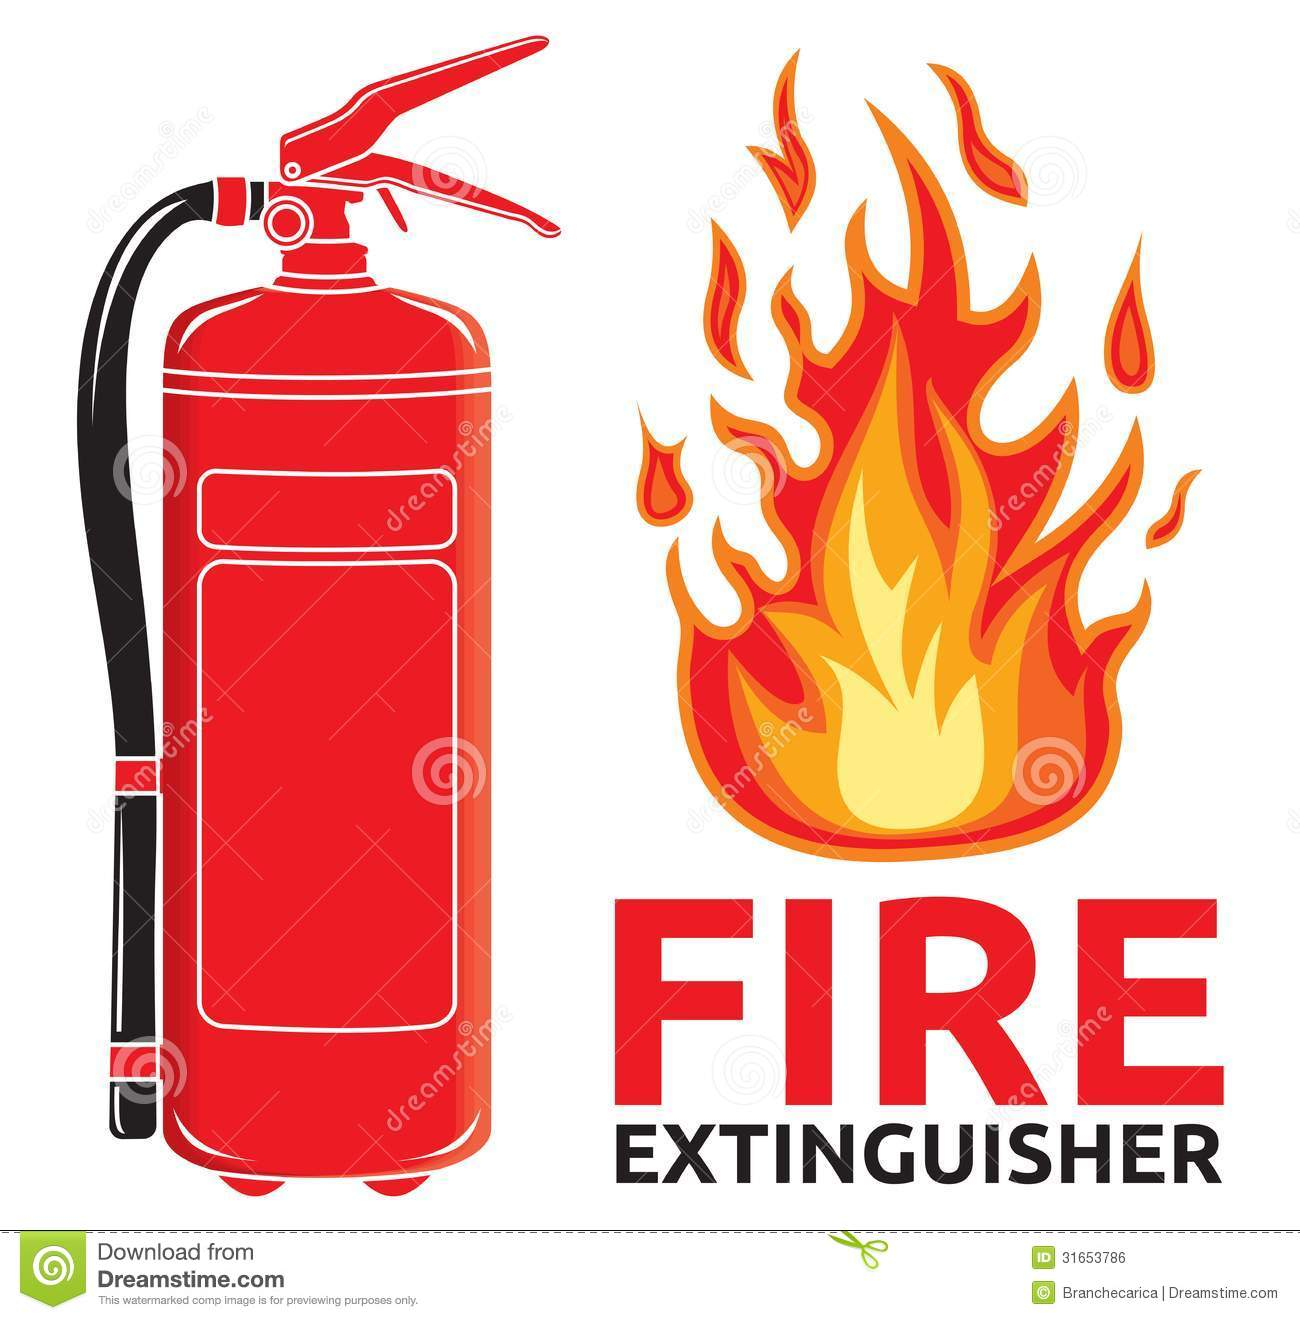 Fire Extinguisher Sign Royalty Free Stock Image - Image: 31653786